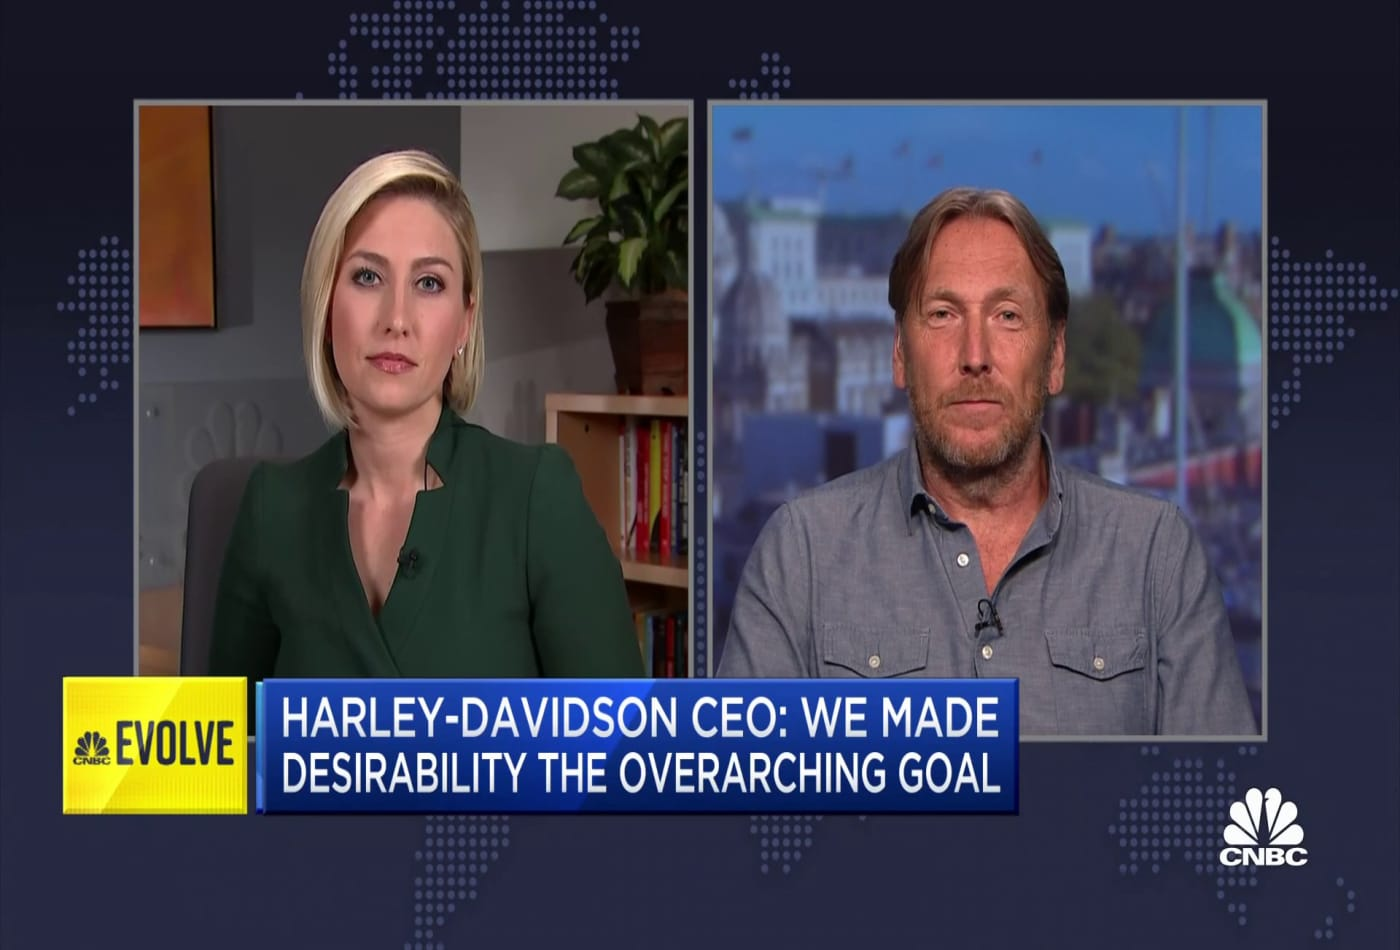 Harley-Davidson CEO: We made desirability the overarching goal